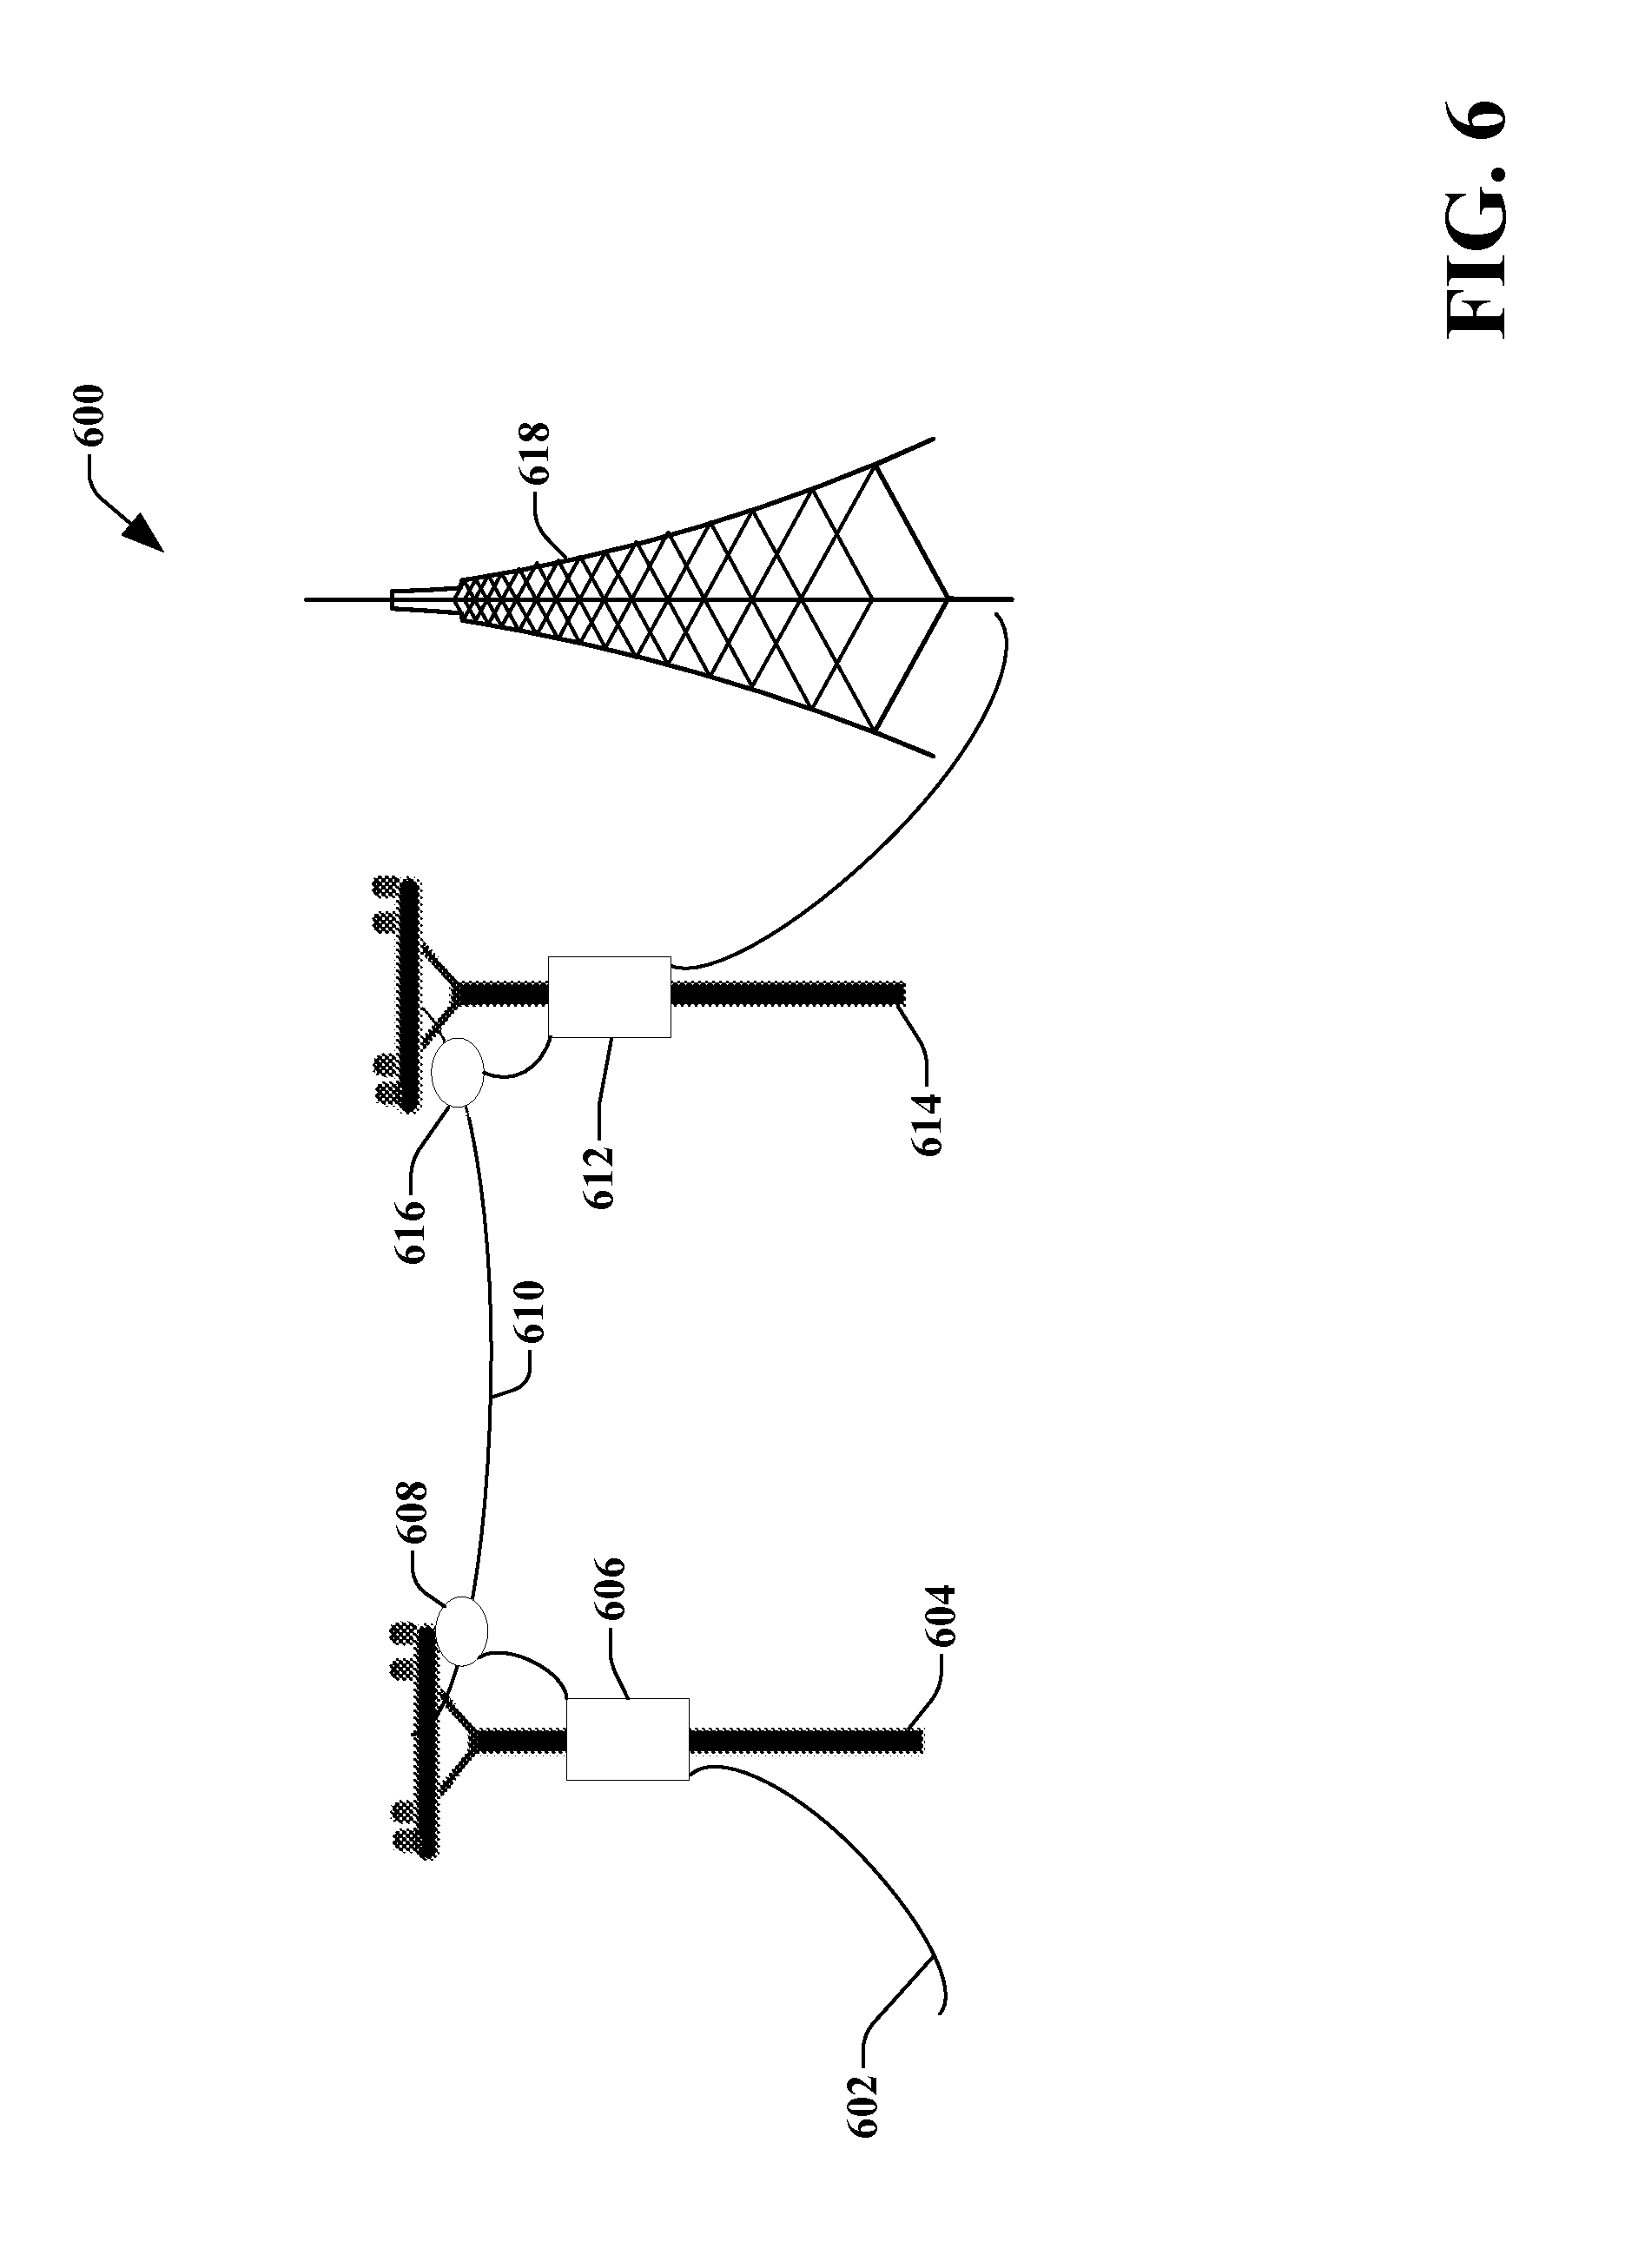 US9467870B2 - Surface-wave communications and methods